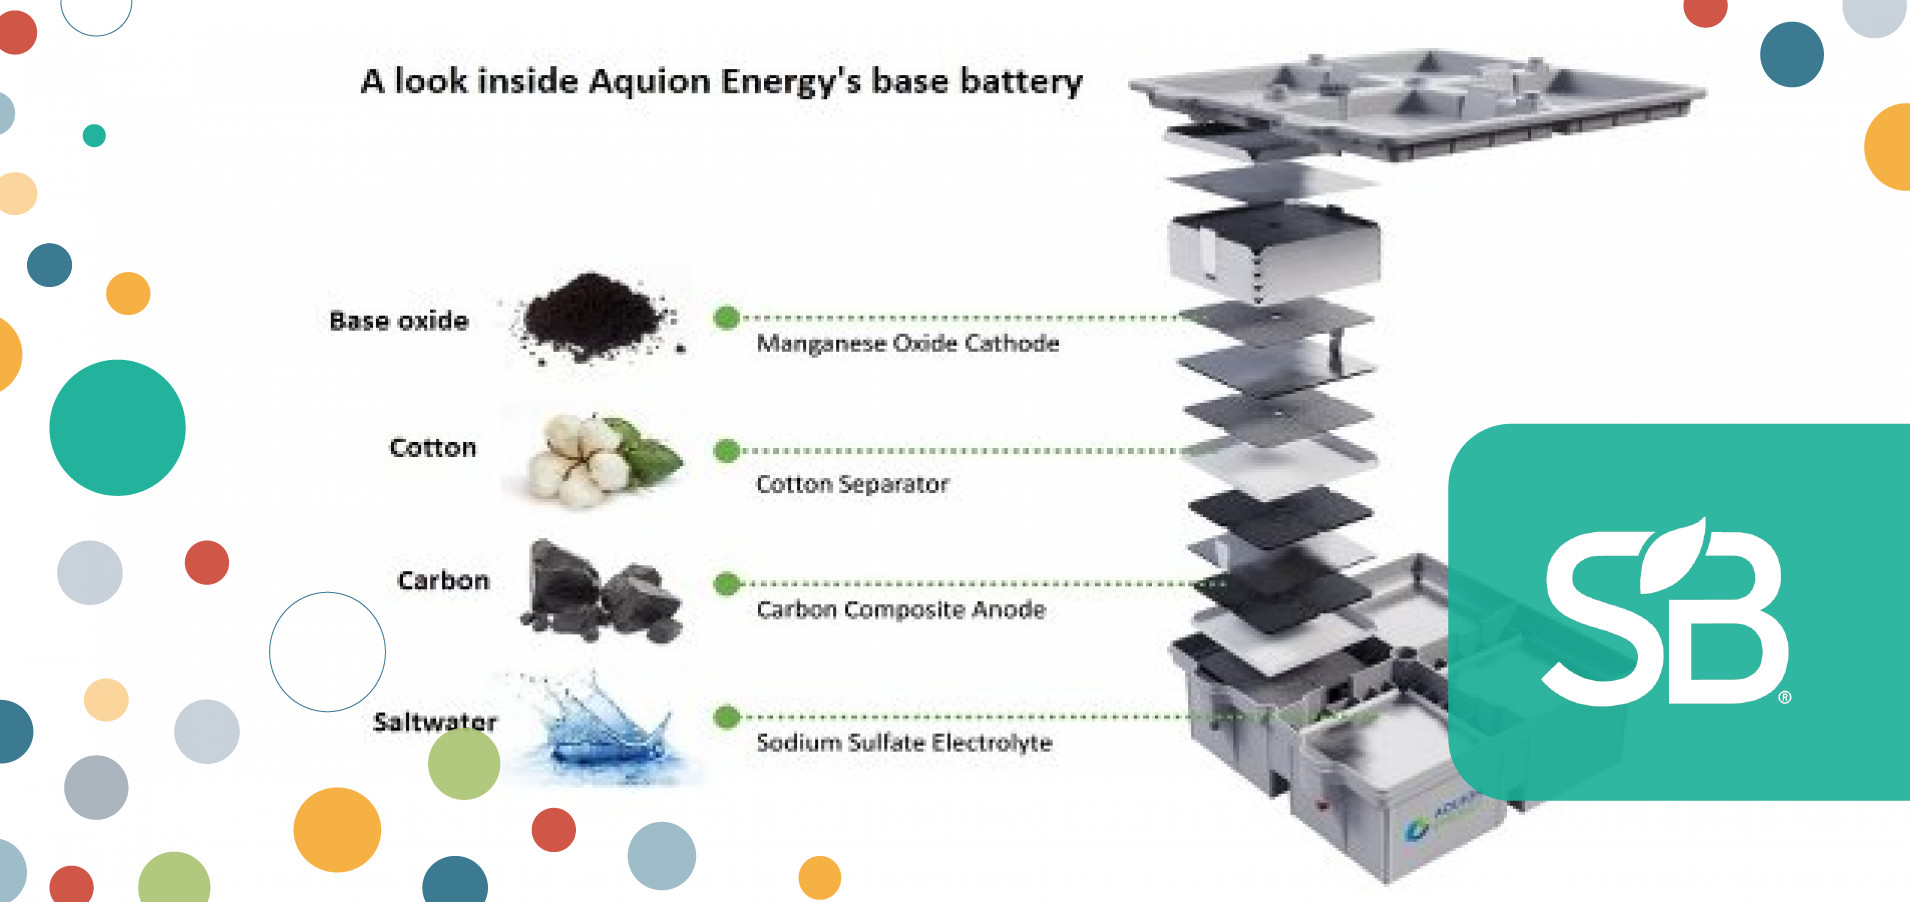 Aquion Energy's Carbon- and Cotton-Based AHI Battery First